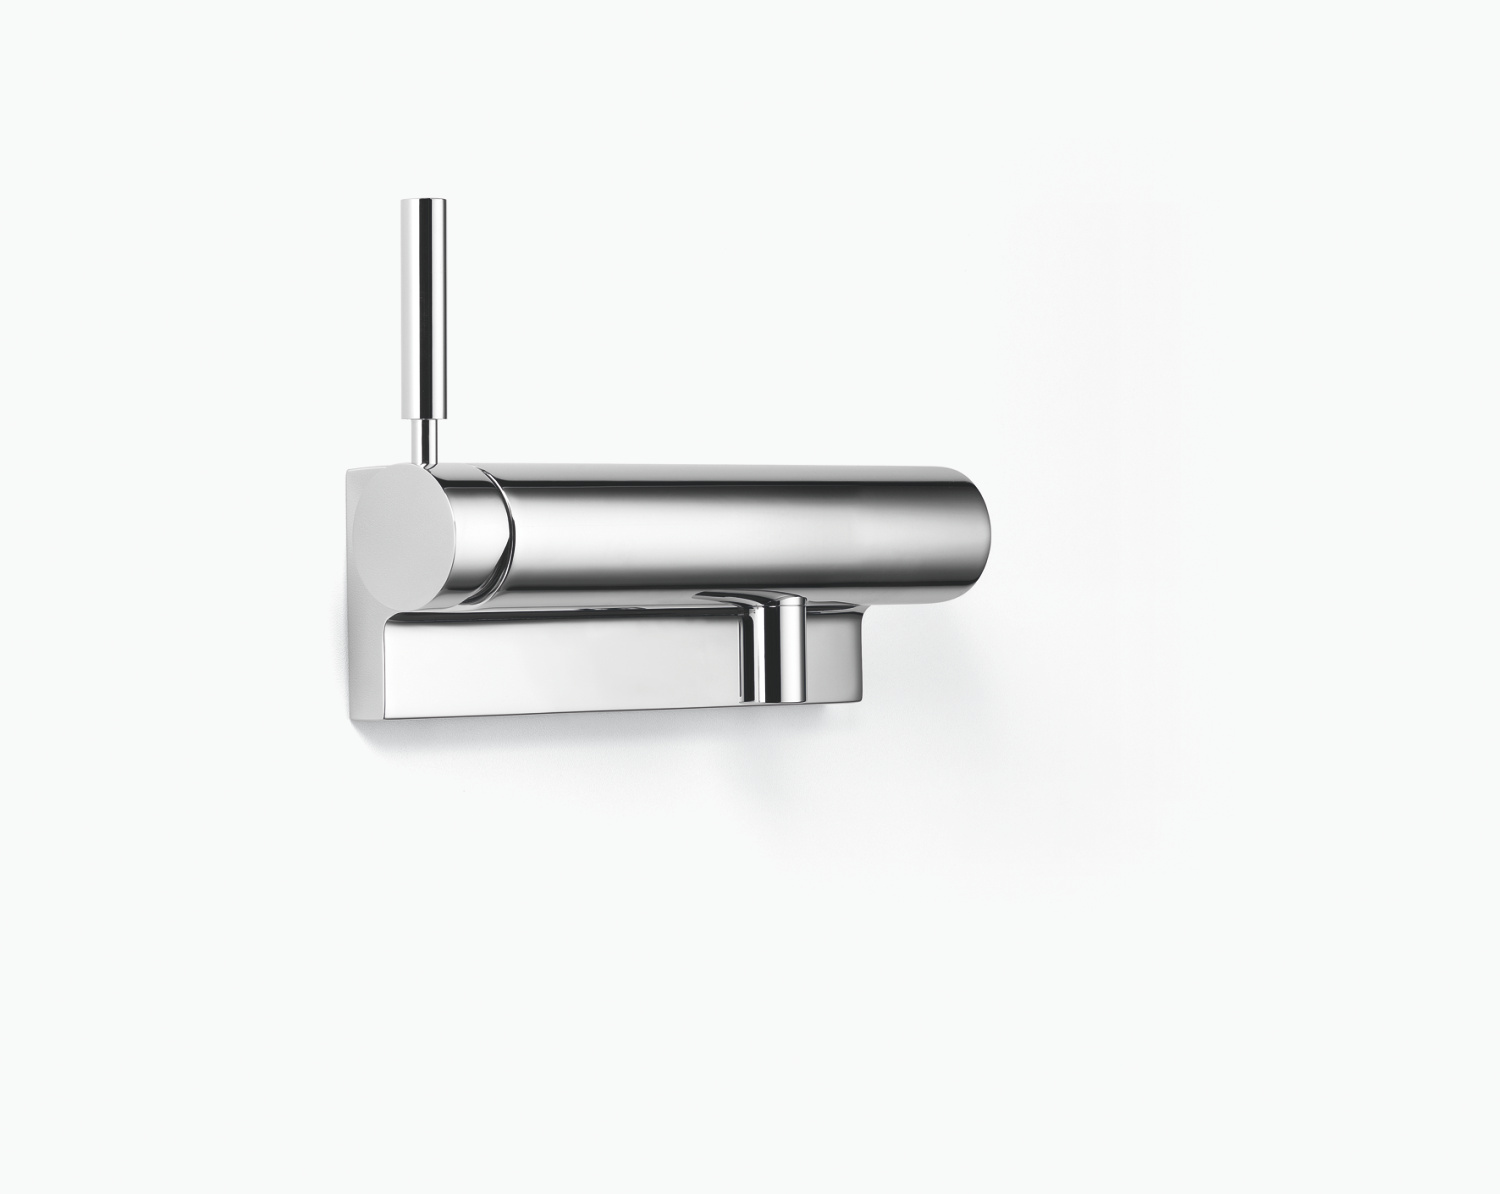 Single-lever shower mixer for wall mounting - polished chrome - 33 300 885-00